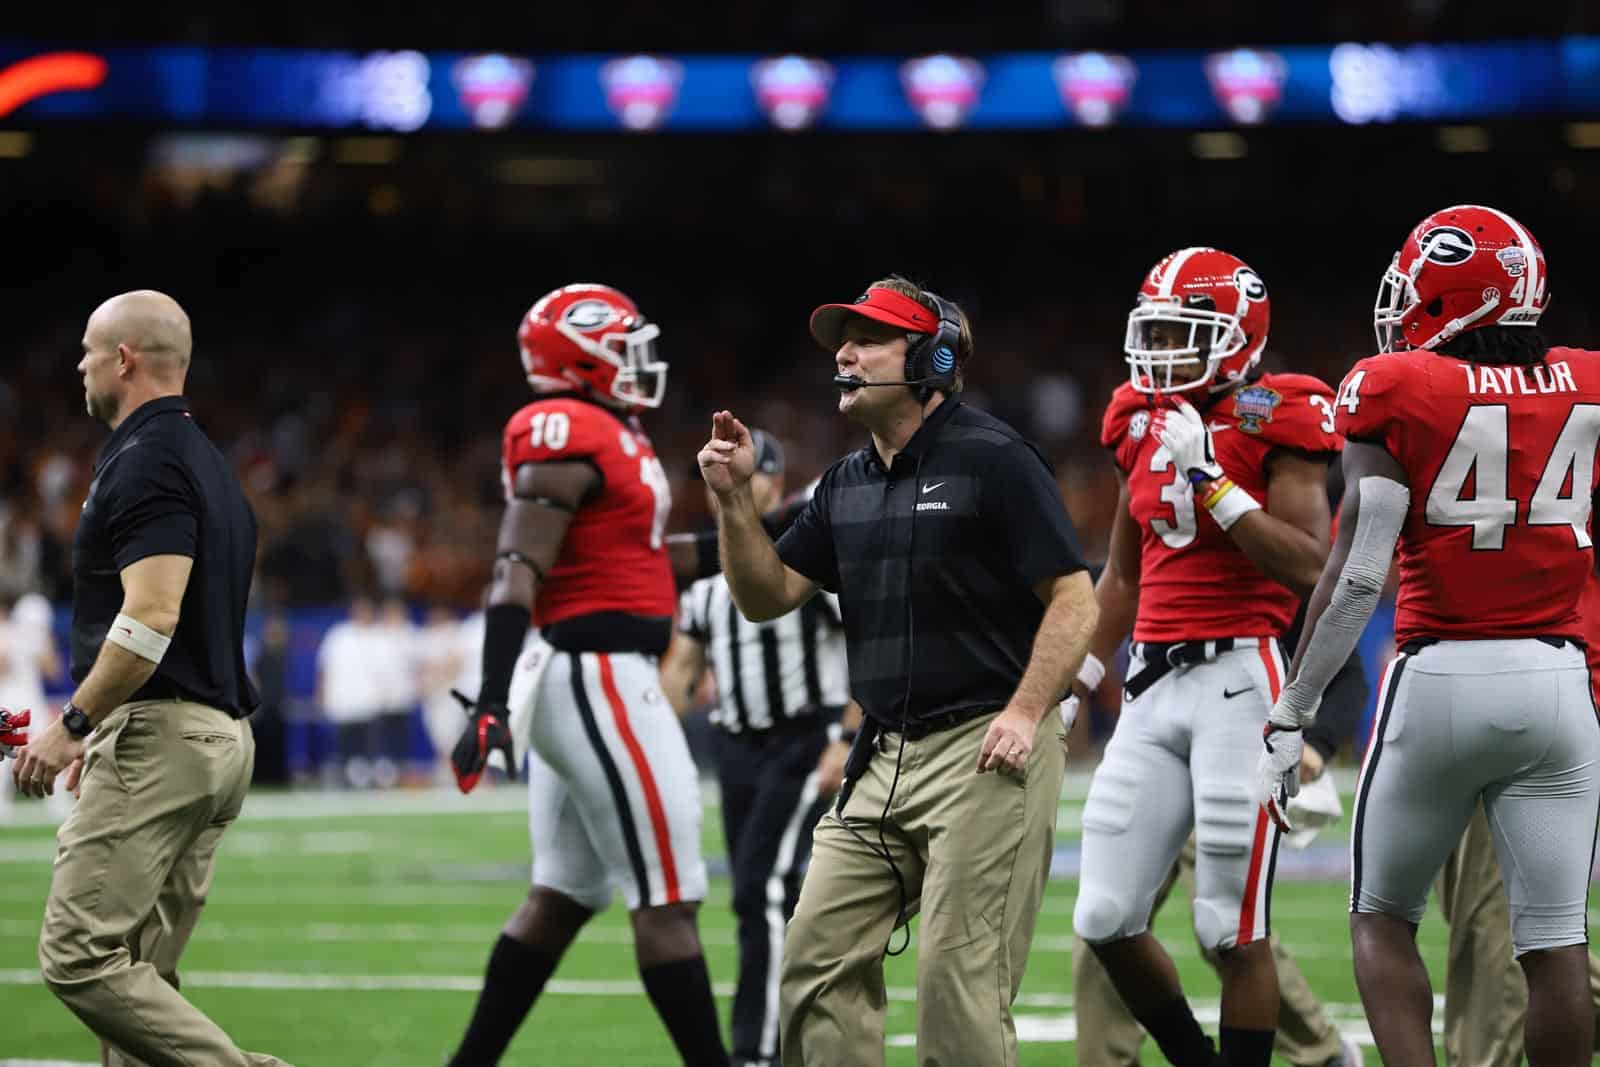 Georgia Finishes 2018 Season In Top 10 Of College Football Rankings